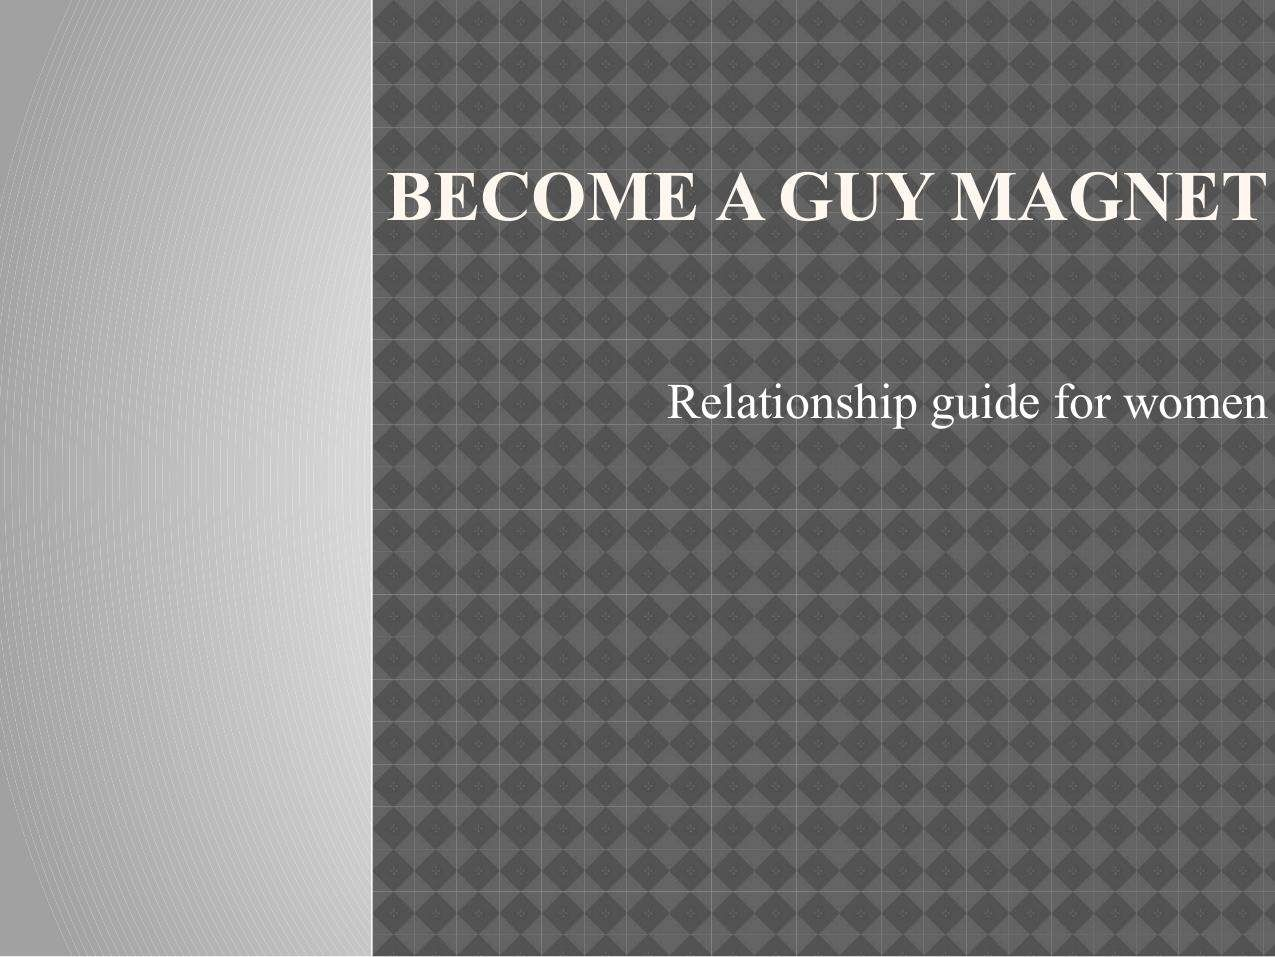 How to become a guy magnet